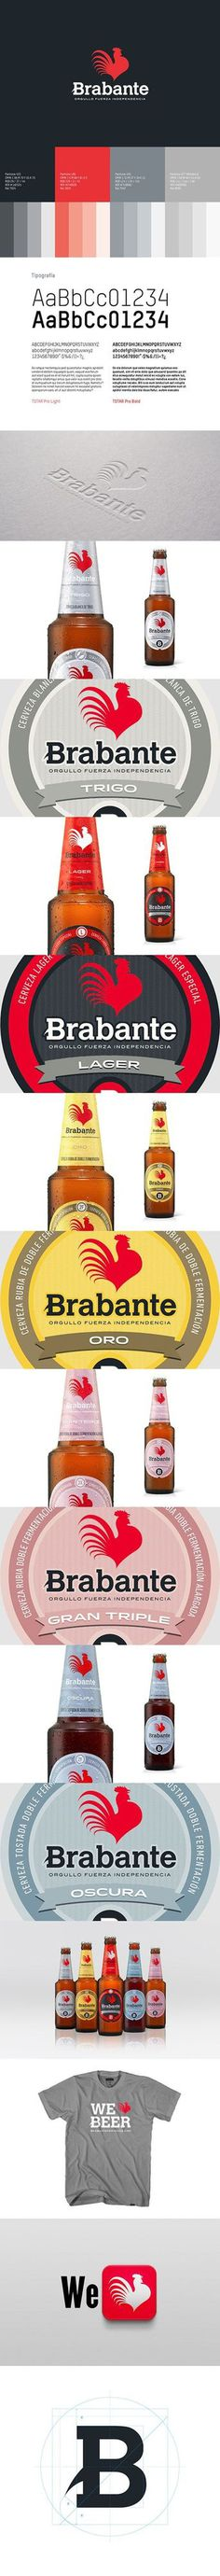 Brabante new visual identity and branding | Designer: TritonePD #graphic design #design #logo #branding #packaging